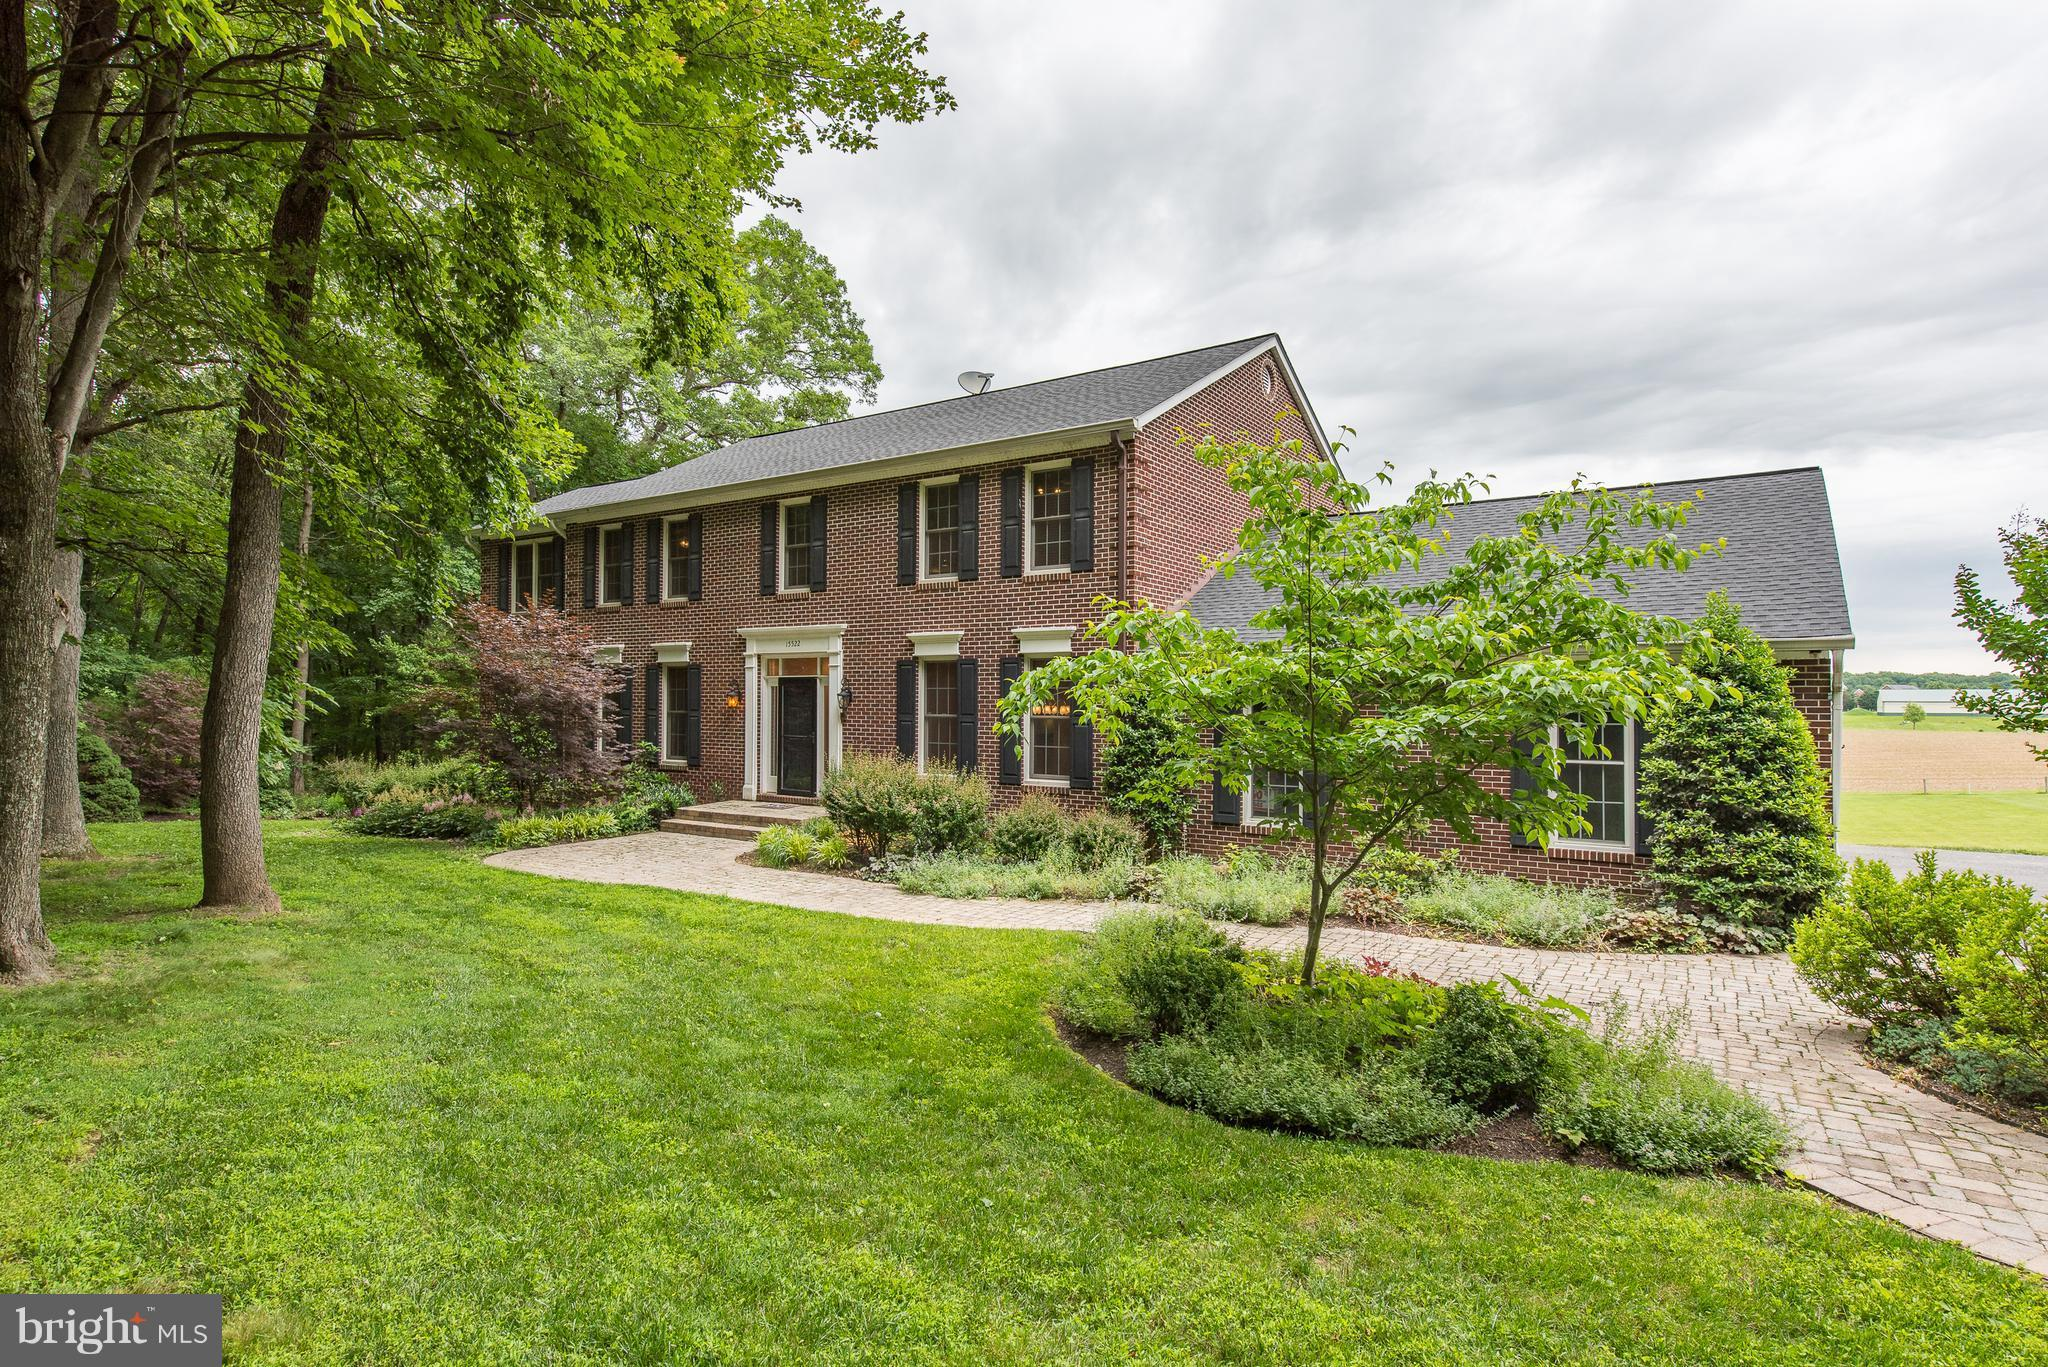 15522 FOXPAW TRAIL, WOODBINE, MD 21797